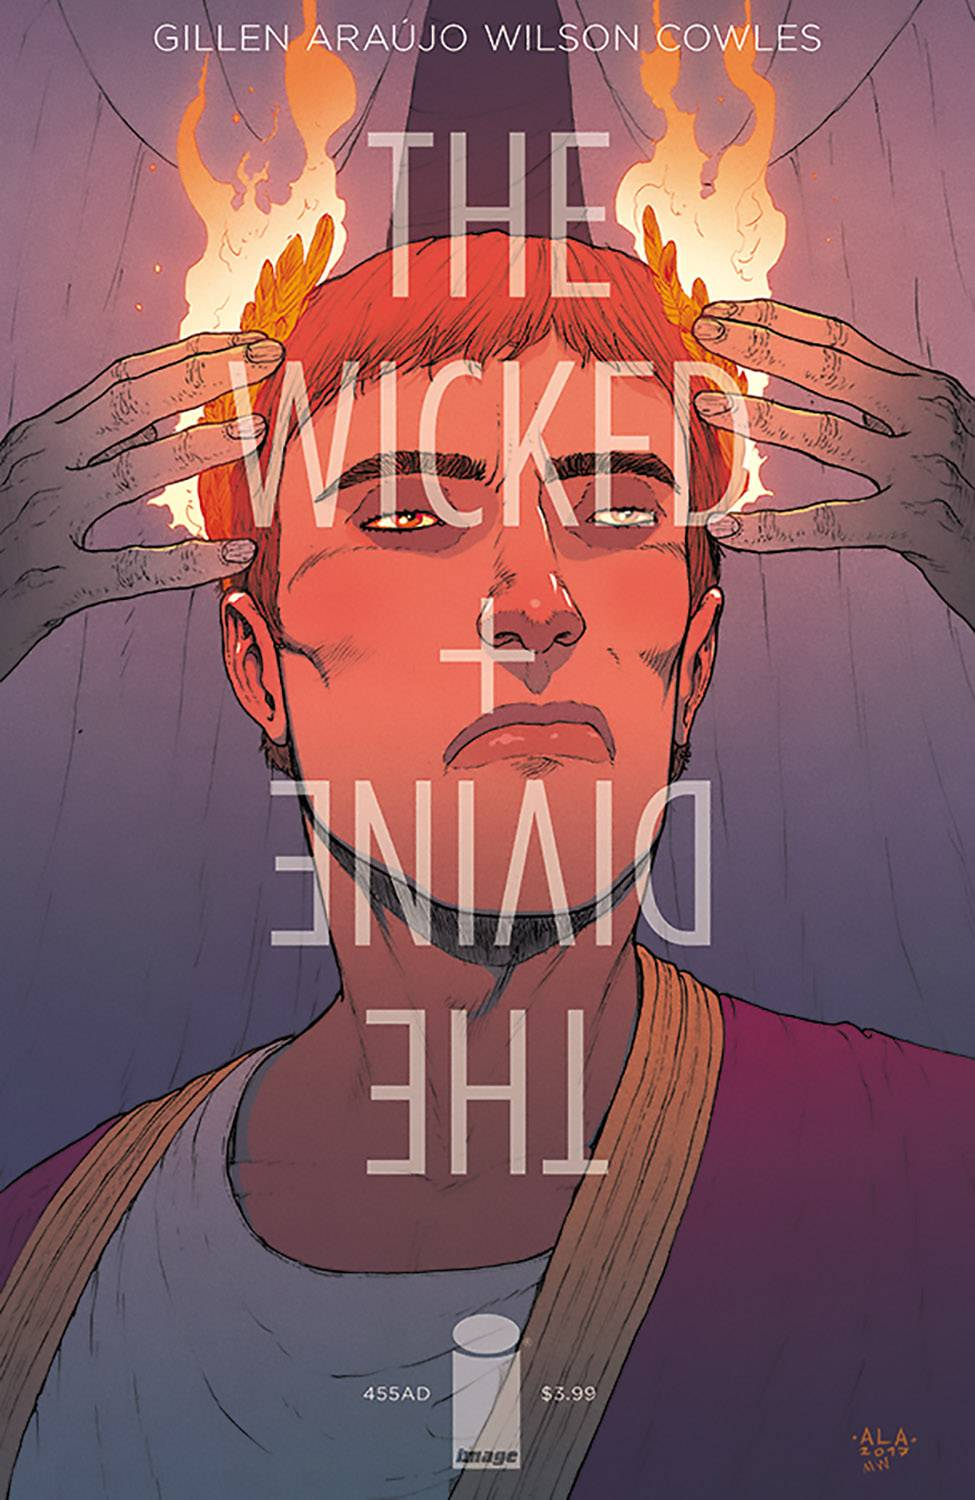 WICKED & DIVINE 455 AD 1 (ONE-SHOT) CVR B ARAUJO.jpg